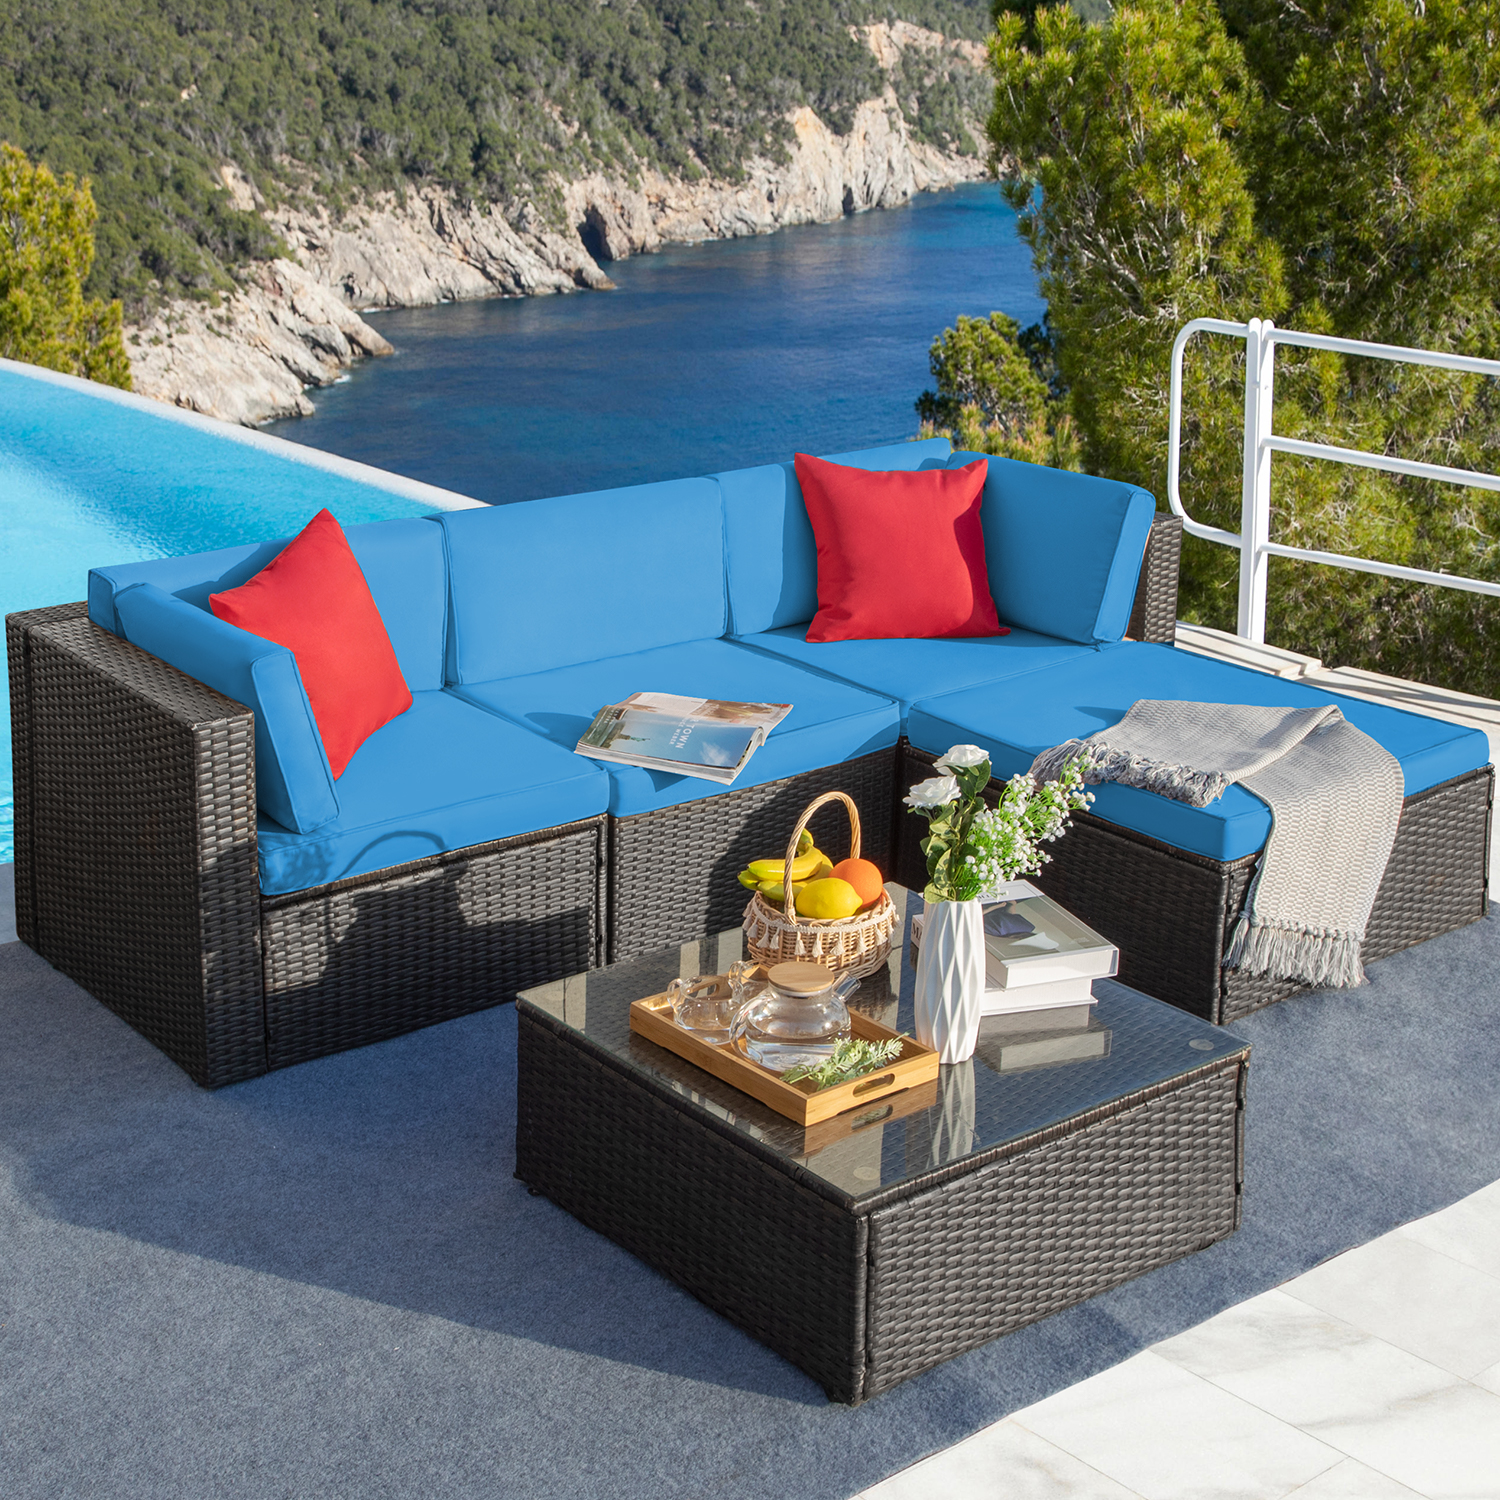 lacoo 5 pieces patio conversation set rattan outdoor sectional set with chushions and table blue